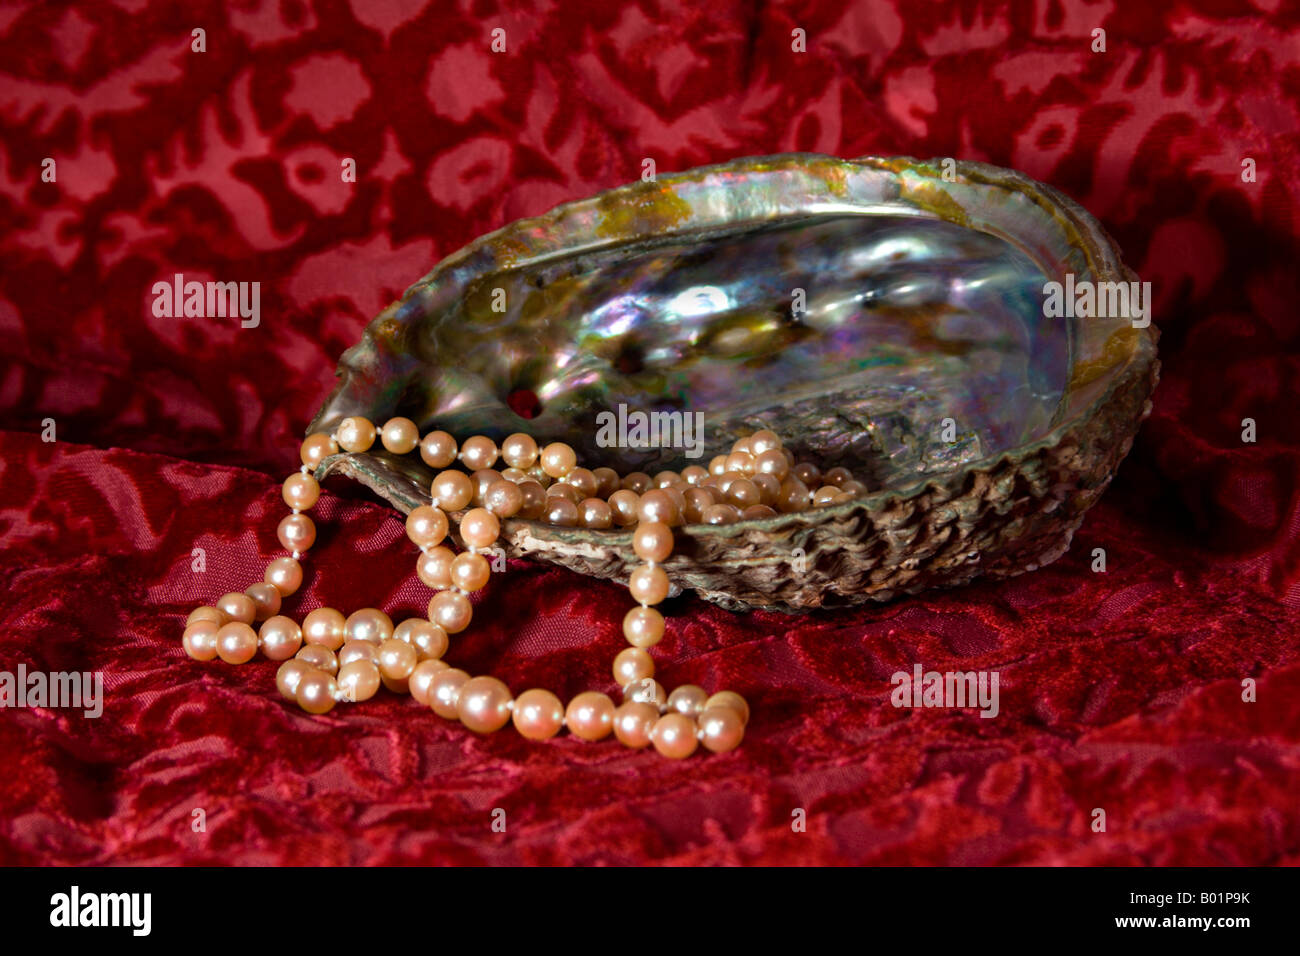 Pearls in a mother-of-pearl shell. - Stock Image